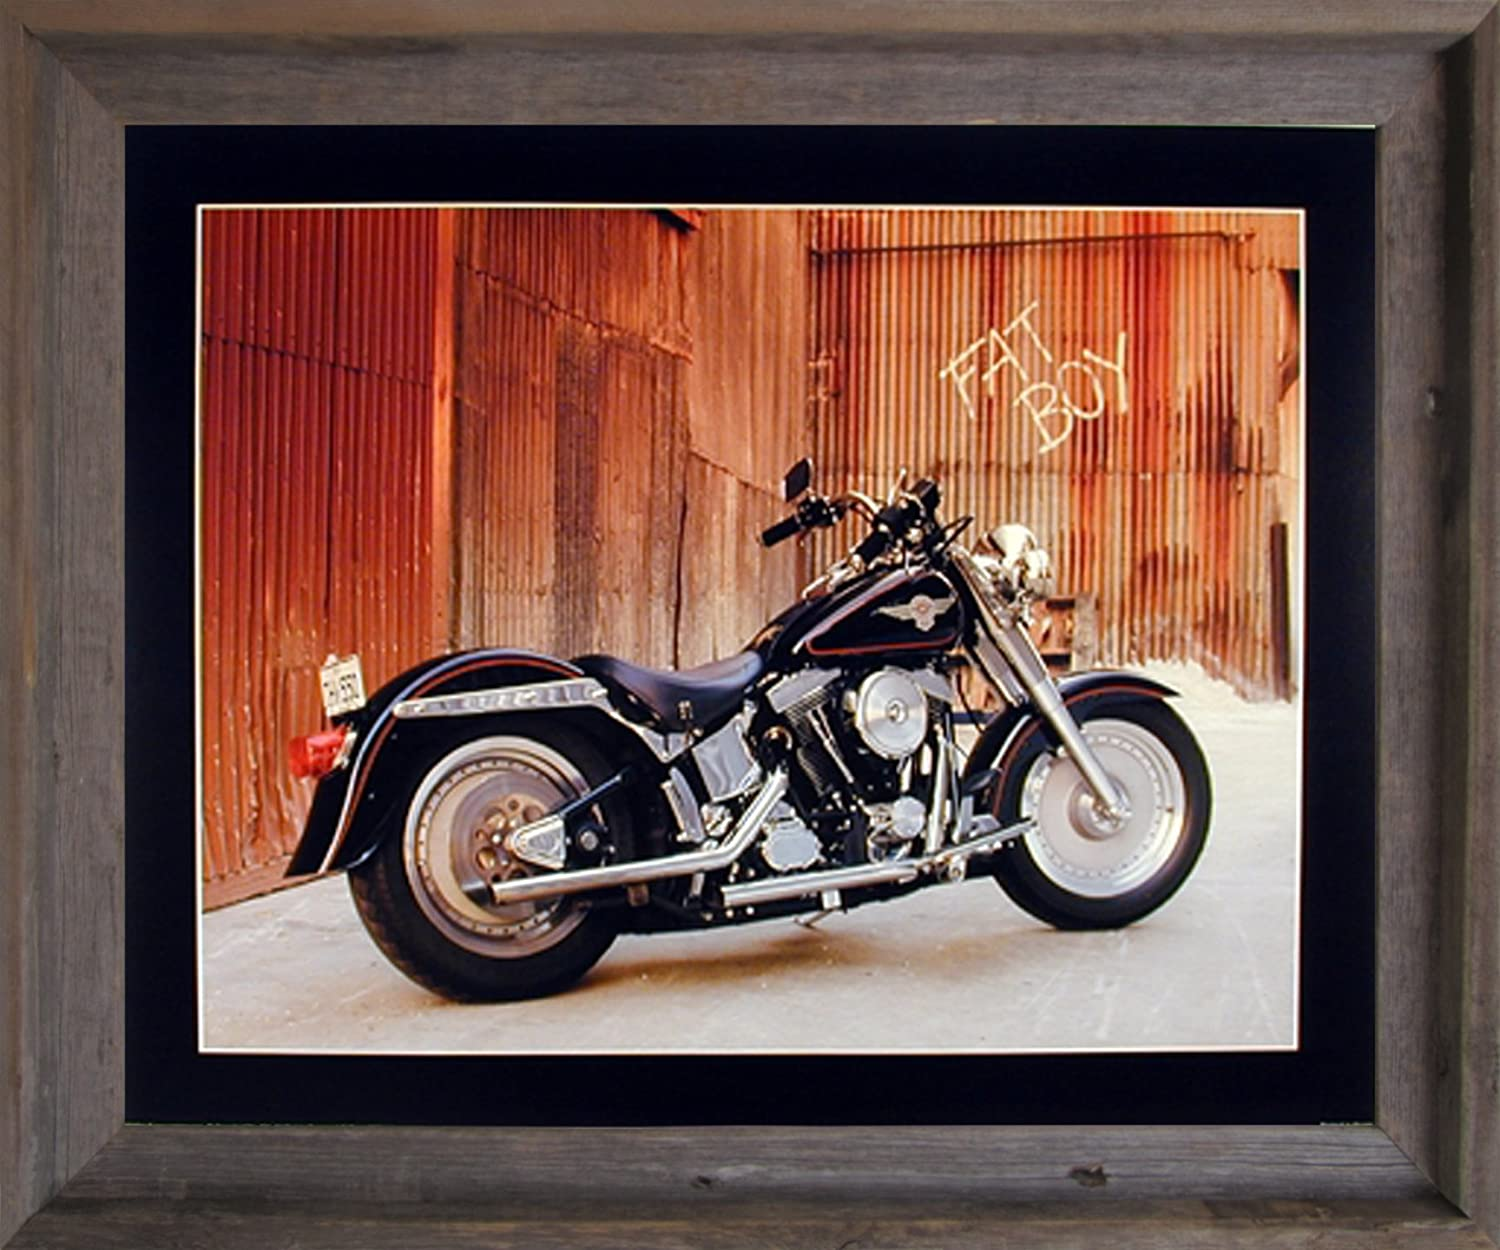 Amazon.com: Impact Posters Gallery Framed Wall Decoration Harley Davidson  Fat Boy Motorcycle Bike Barnwood Framed Picture Art Print (19x23): Posters  U0026 ...